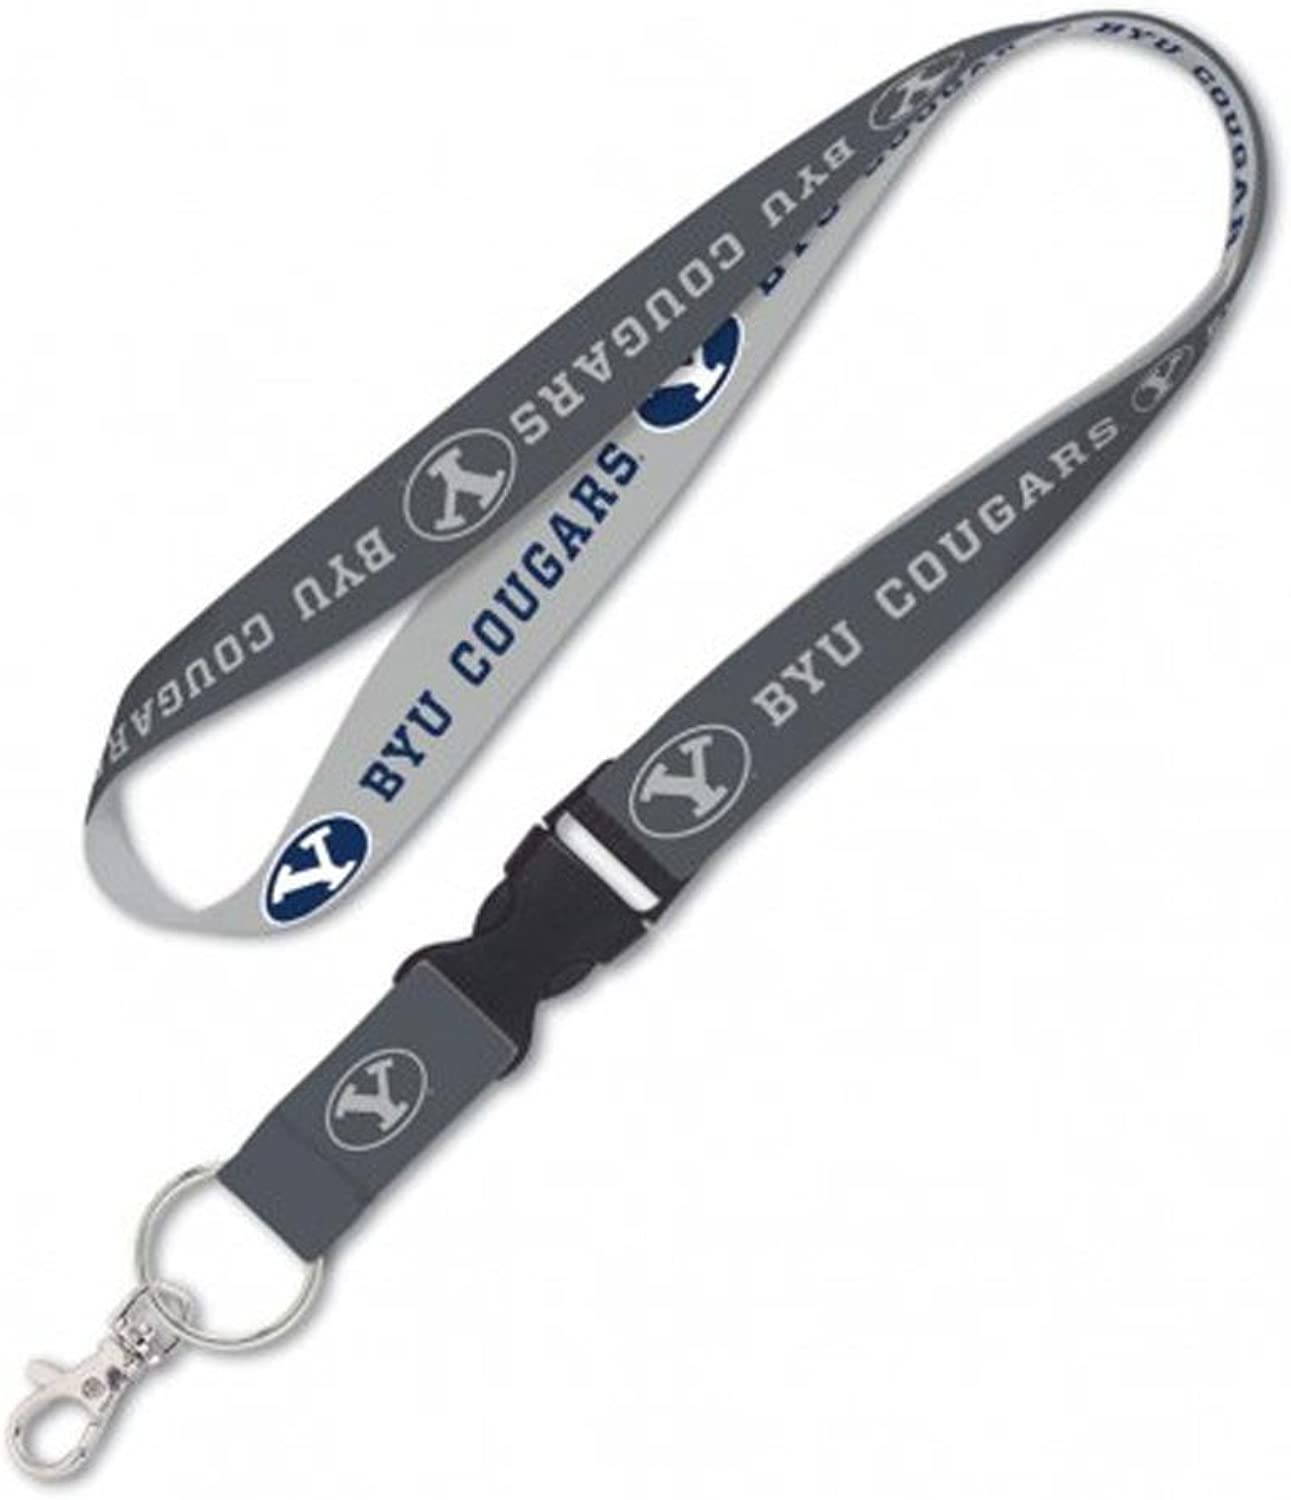 Brigham Young Cougars BYU Premium Lanyard Keychain W  Detachable Buckle, 23 inches long, 1 inch wide